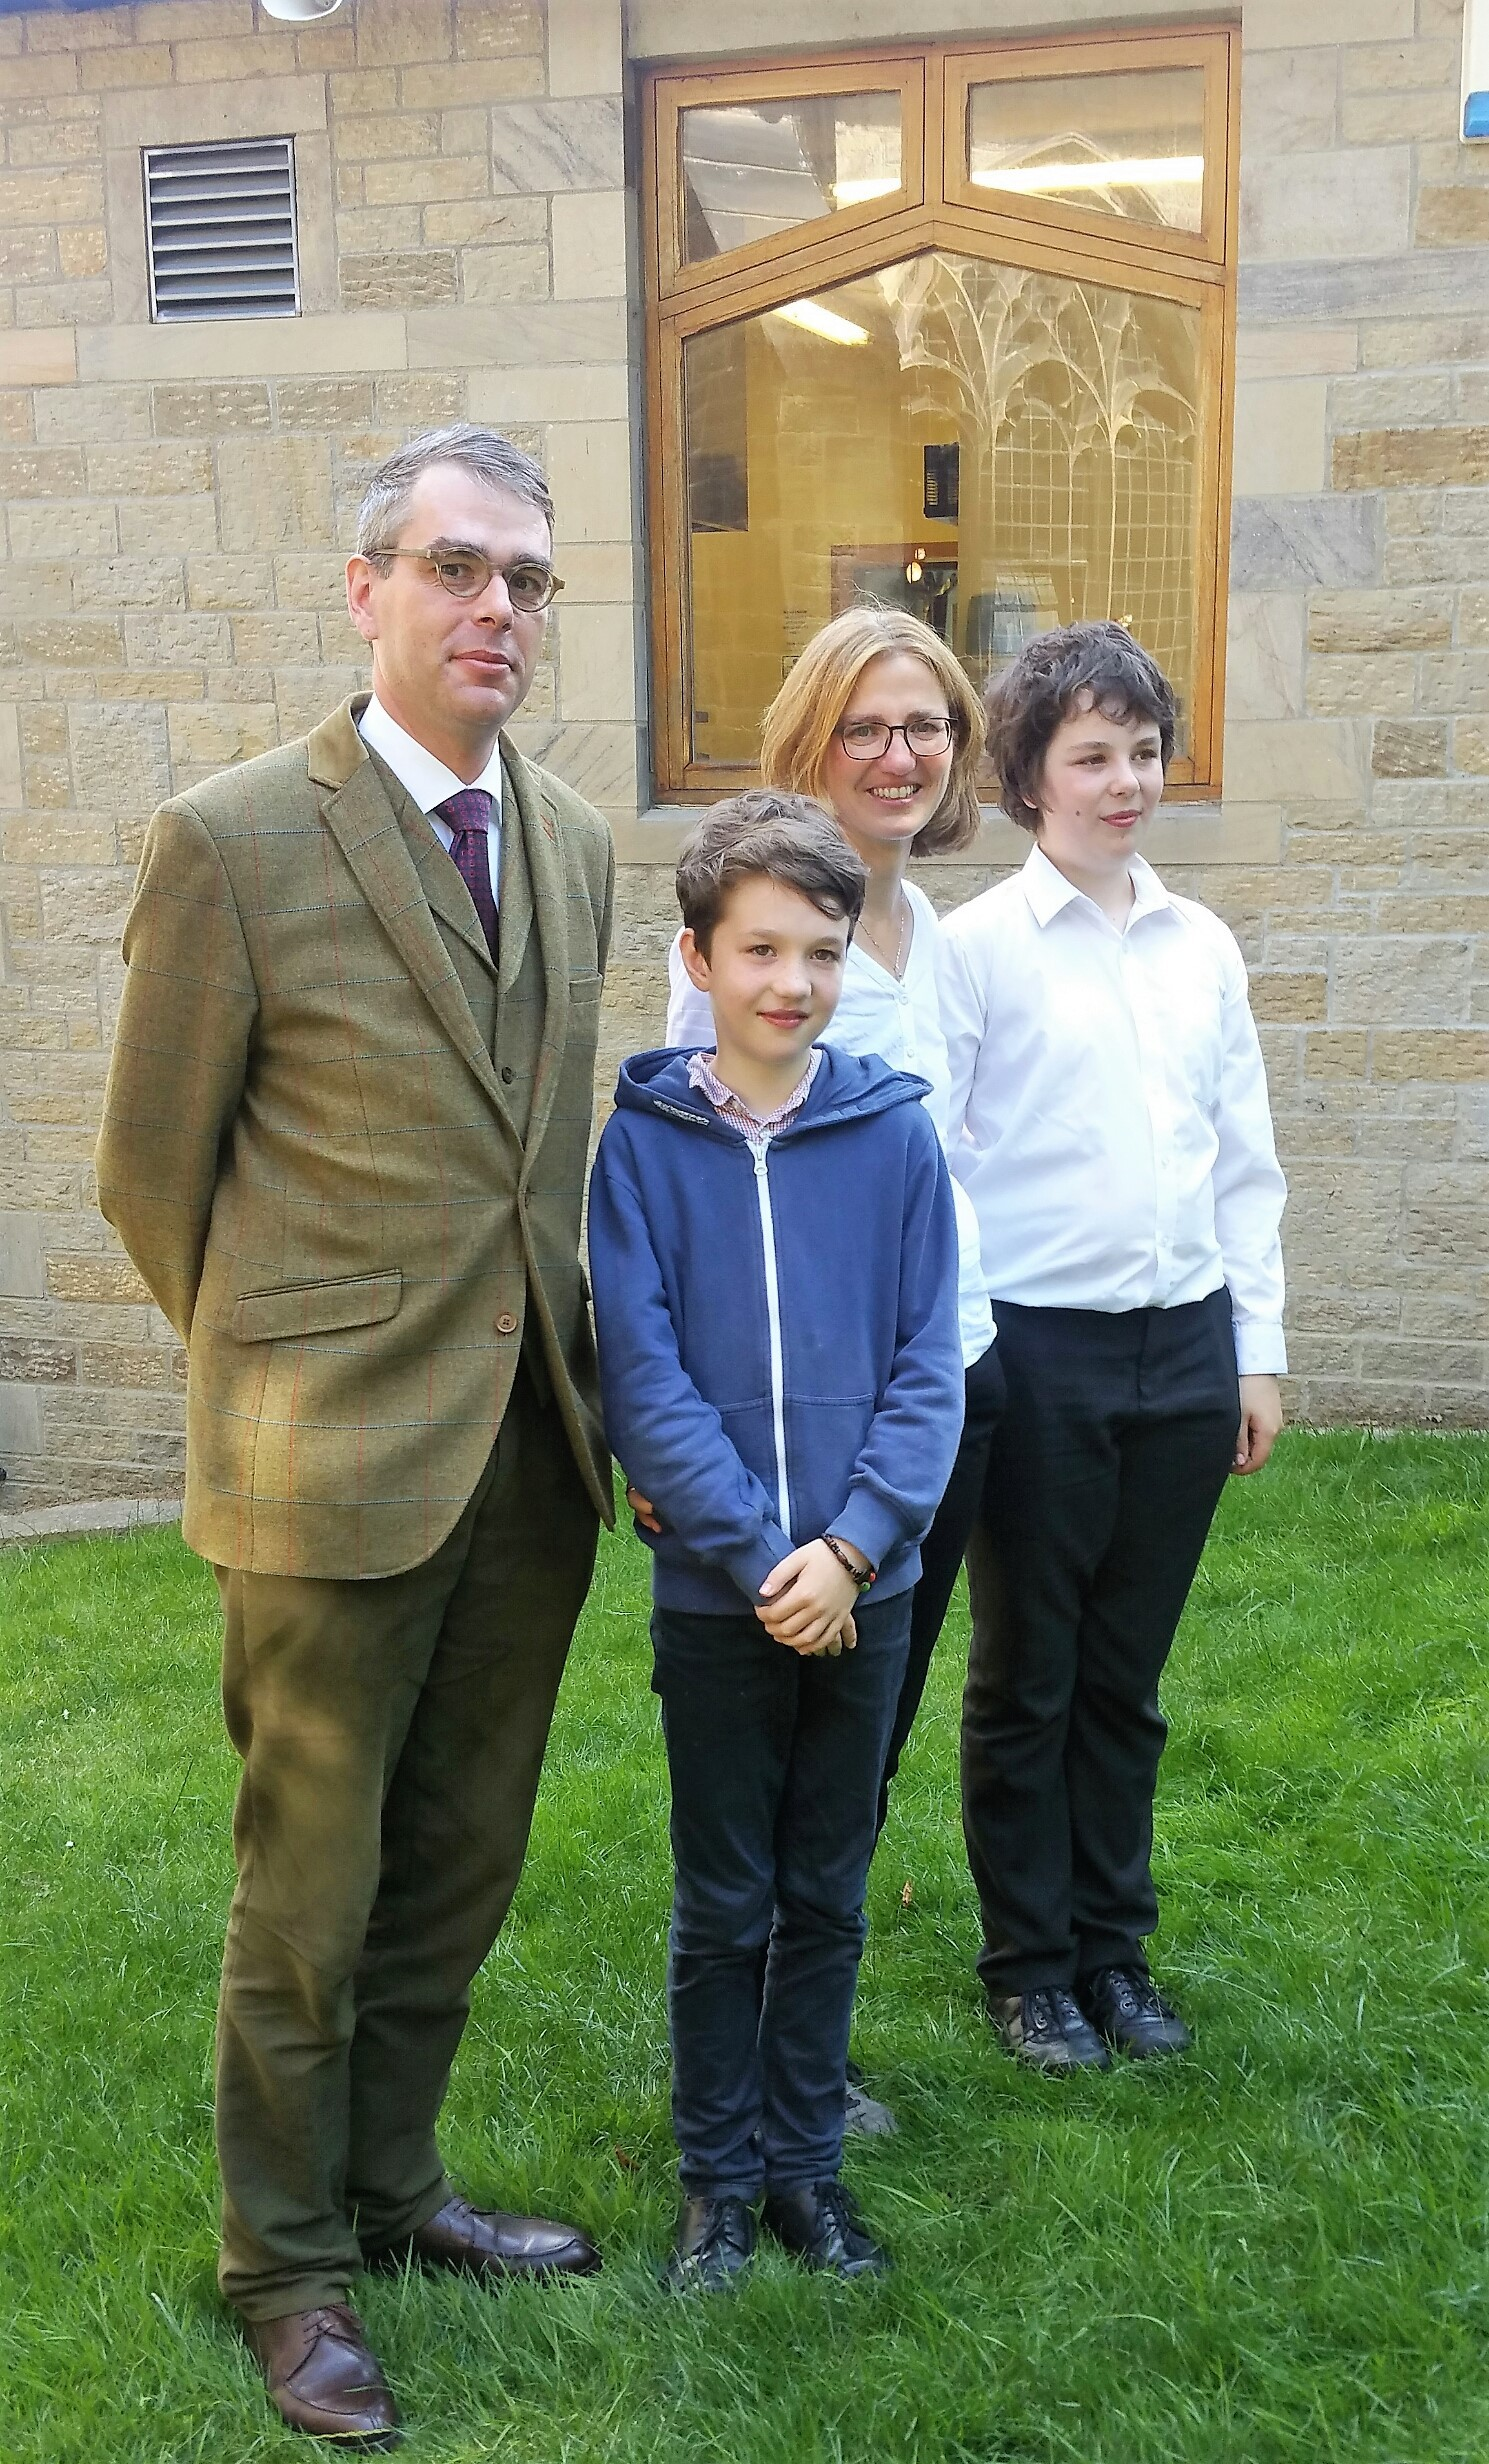 The Beyersdorff family, who have headed back to Germany after a six year stay in Ilkley, have bid a fond farewell to the town and St Margaret's Church